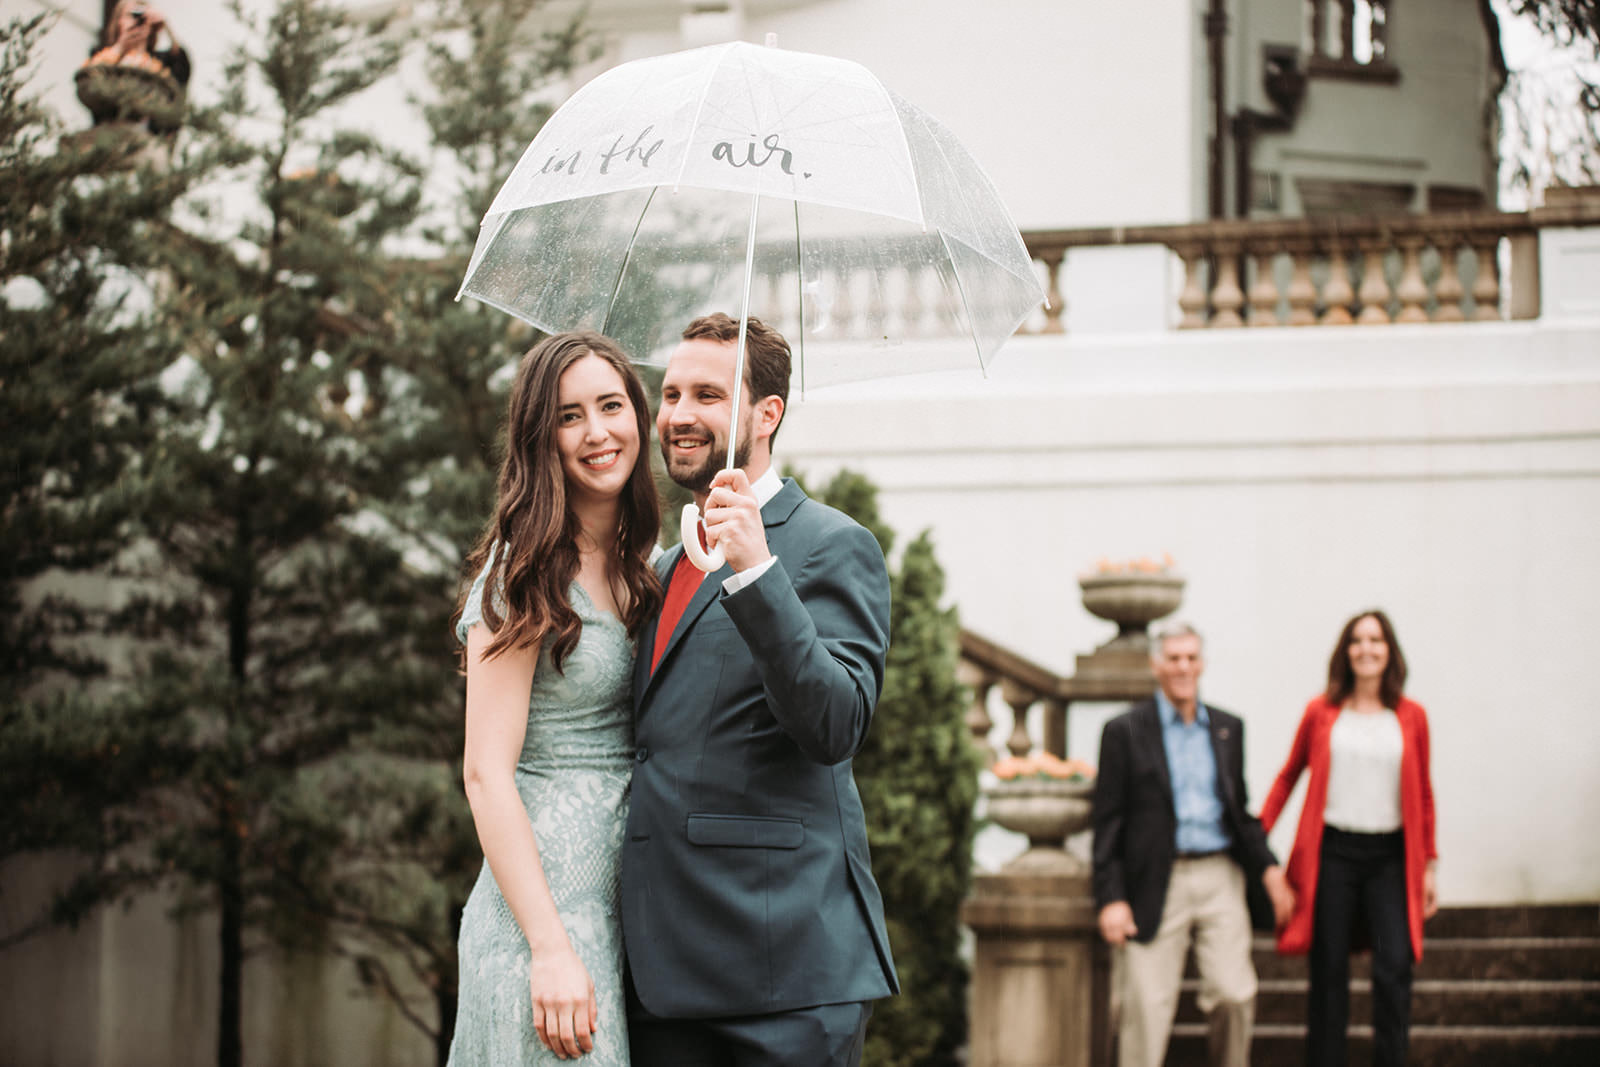 Newfields_Indianapolis_Spring_Proposal_Engagement_Session-28.jpg